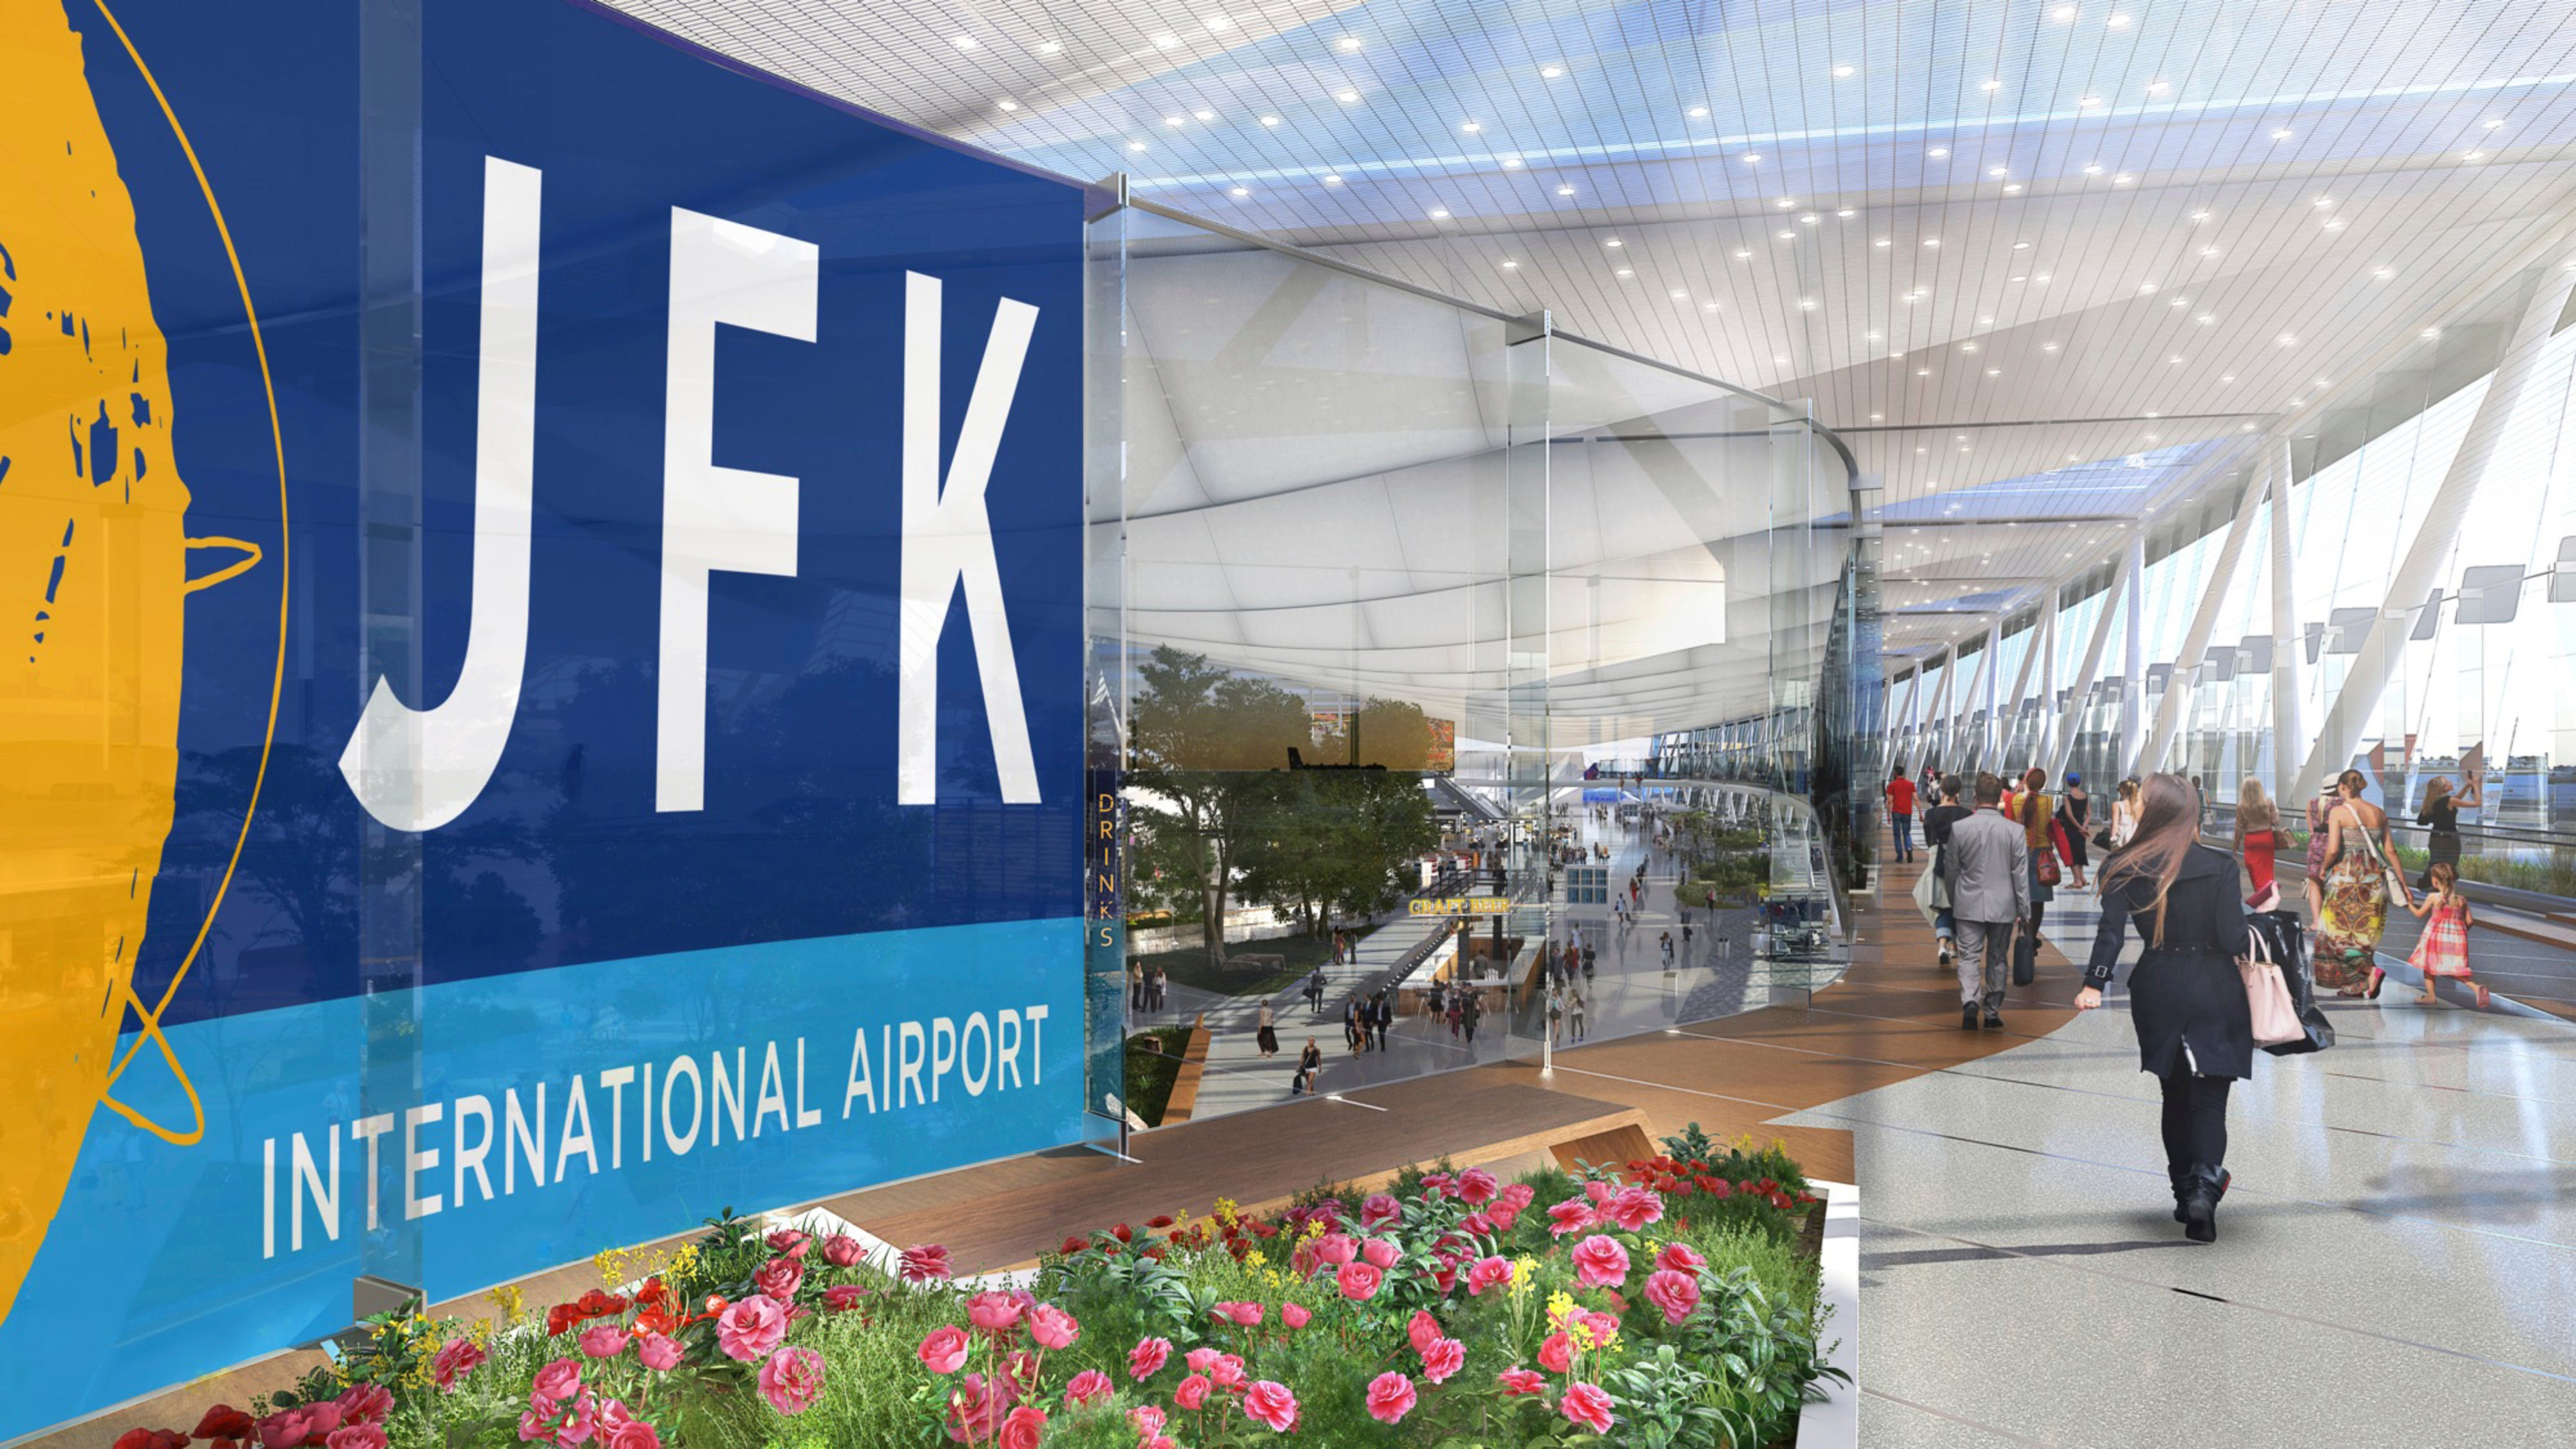 JFK Airport Terminal To Be Transformed Into Elegant Hotel